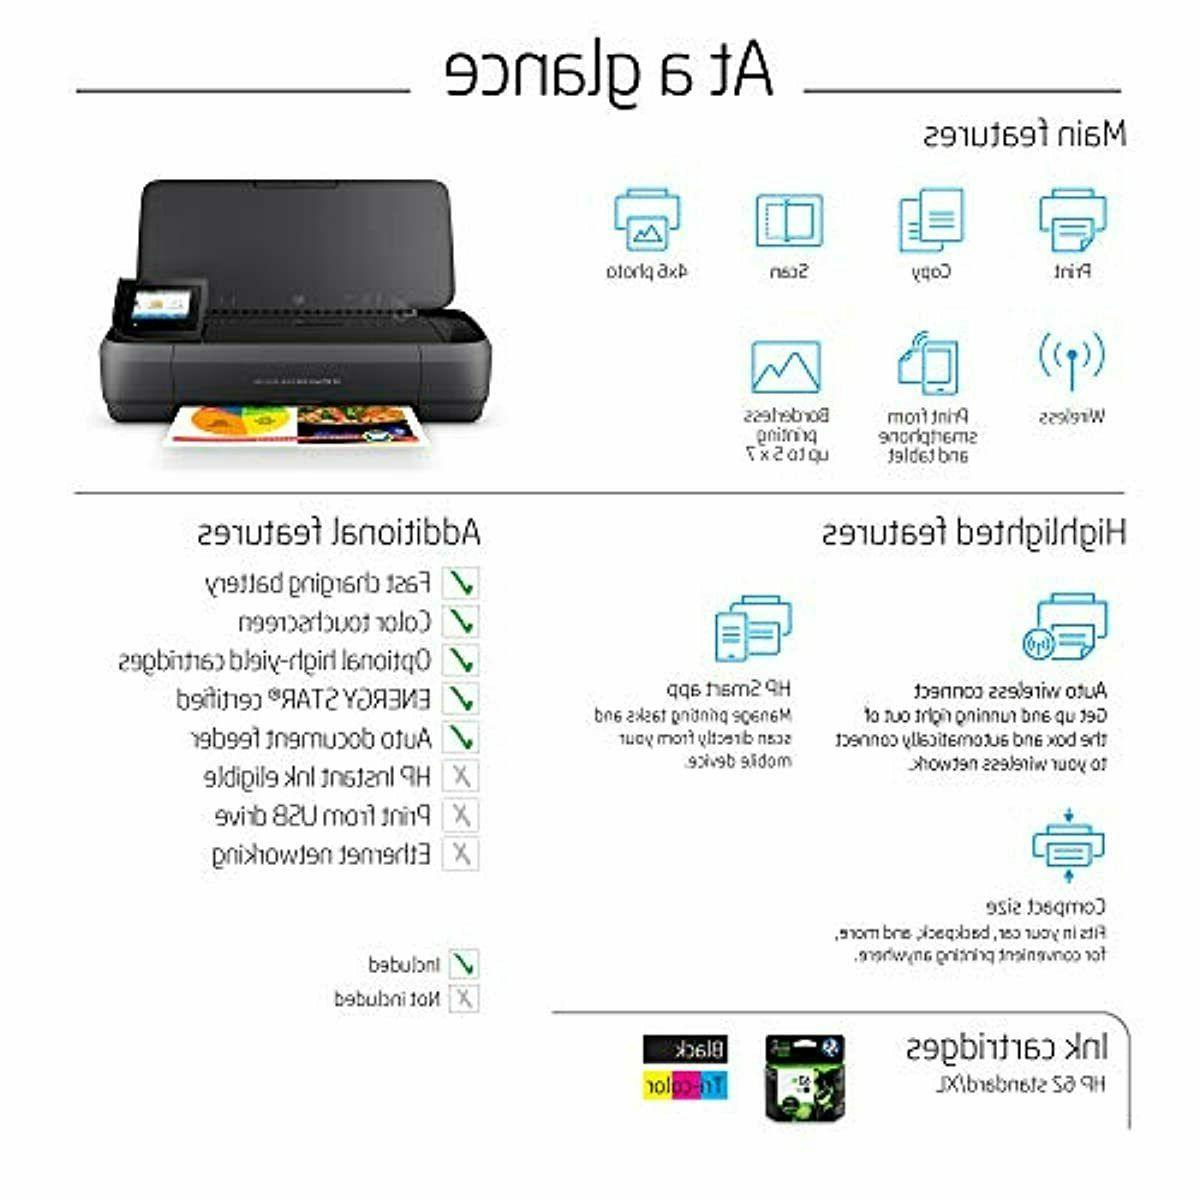 HP OfficeJet All-in-One Portable with Wireless & Printing